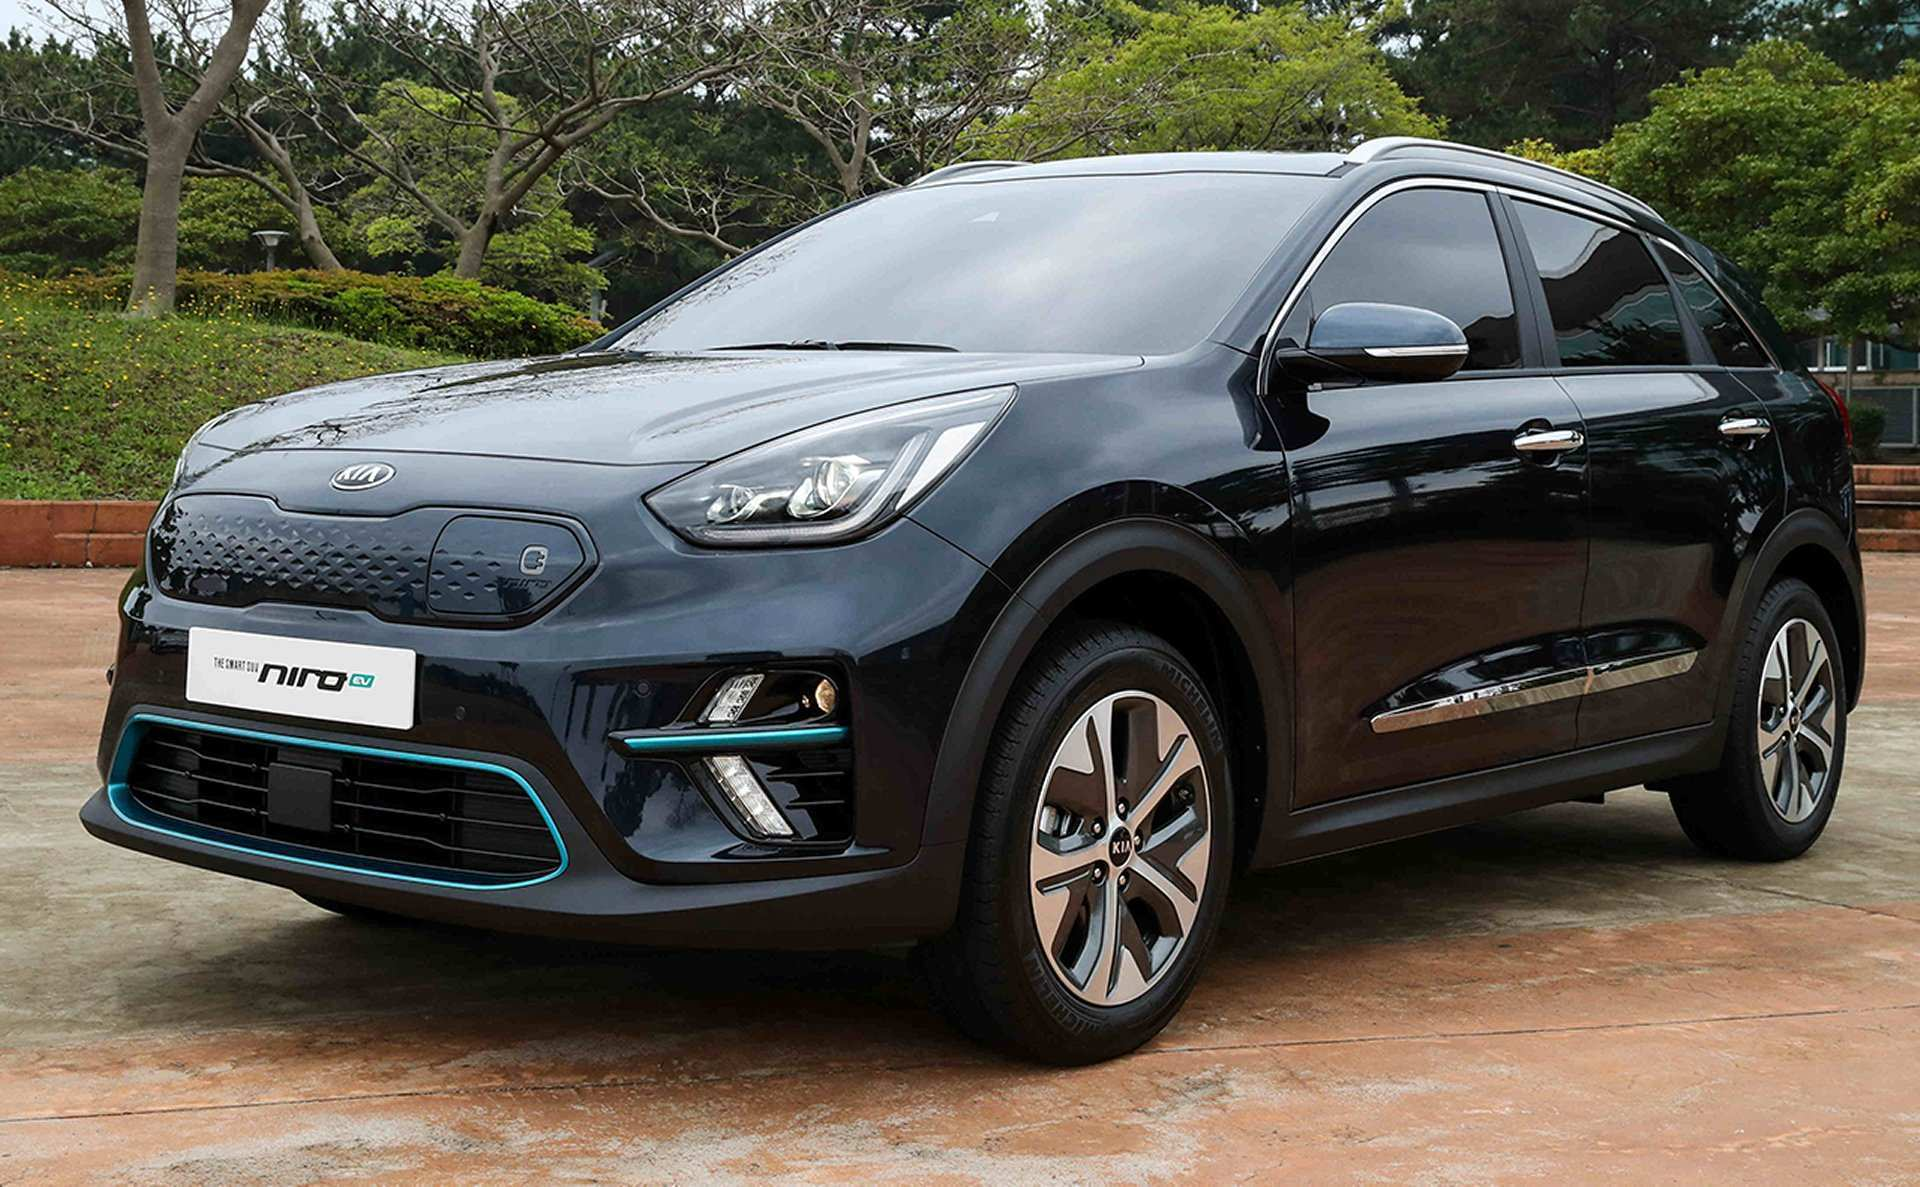 39 Great 2020 Kia Niro Configurations by 2020 Kia Niro